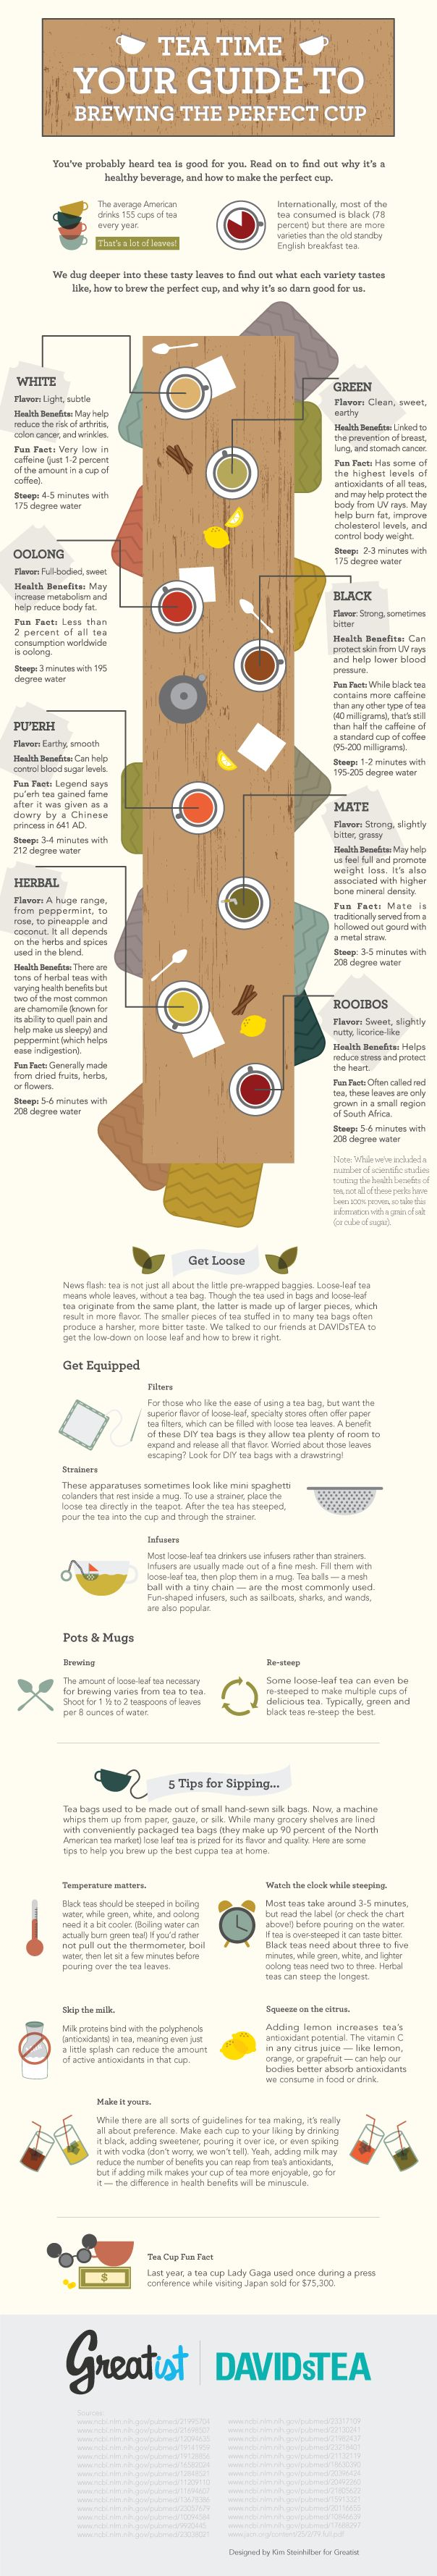 Brewing the perfect cup of tea ::: Steeping instructions for white, green, black, oolong, pu'erh, mate, and rooibos teas along with health benefits and fun facts for each #infografía